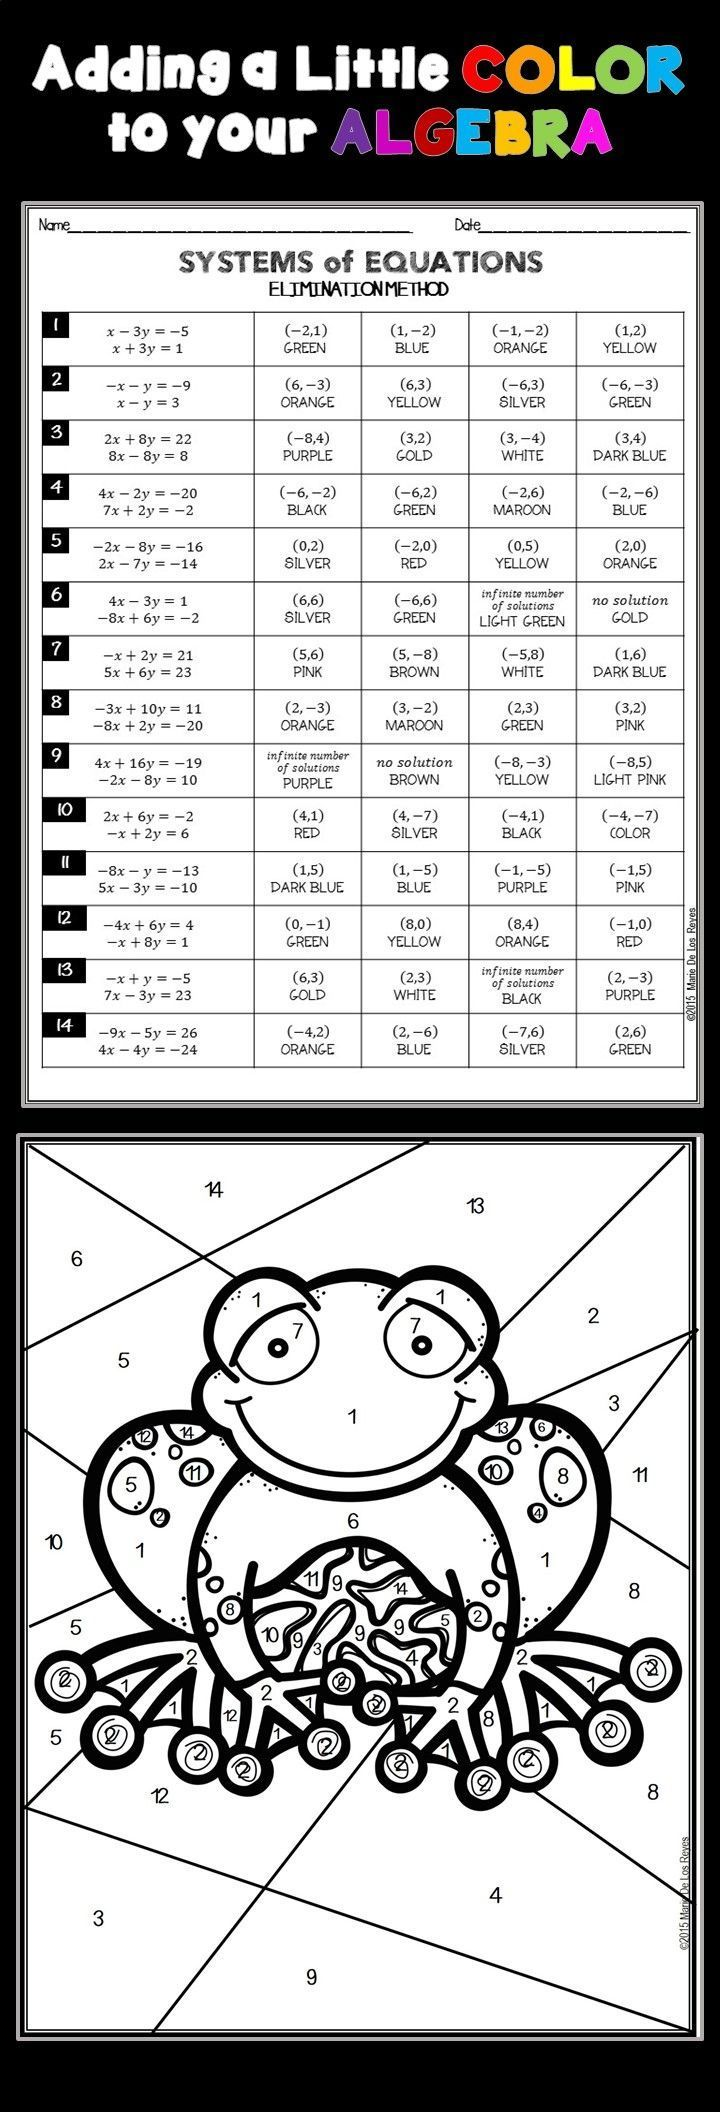 worksheet Solving Systems Using Elimination Worksheet solving systems of equations elimination method coloring activity activity